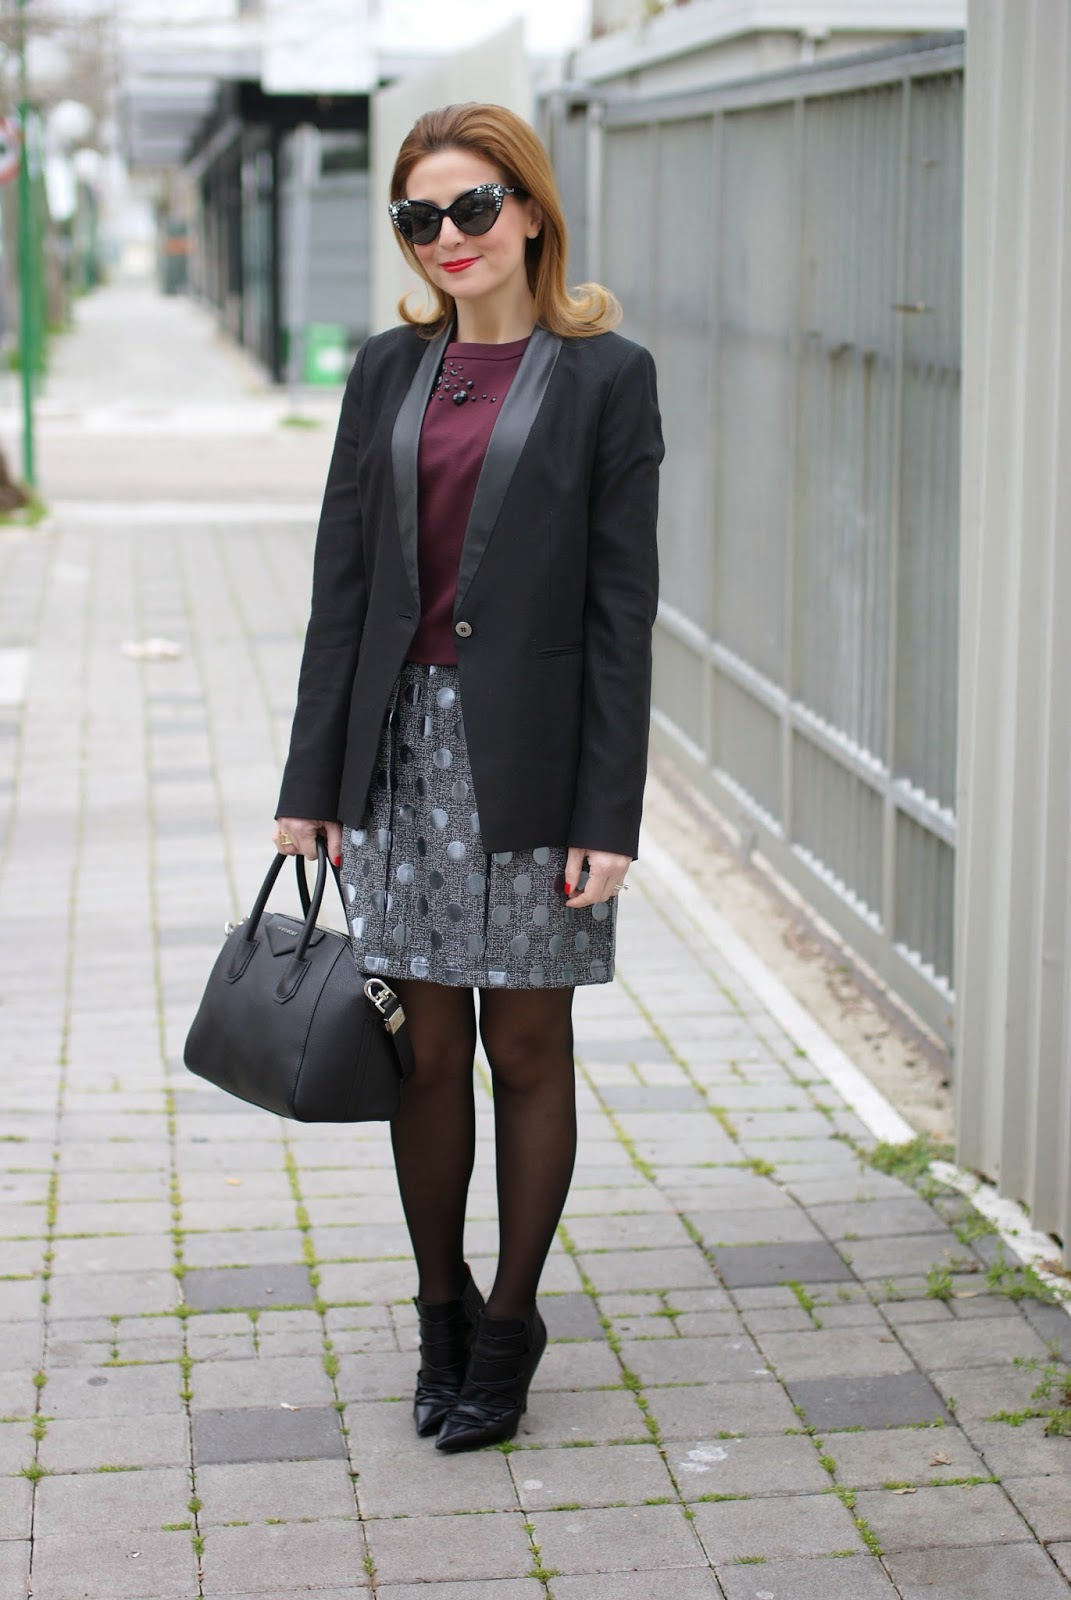 Jijil polka dot skirt, gonna palloncino pois, sheer black tights on Fashion and Cookies fashion blog